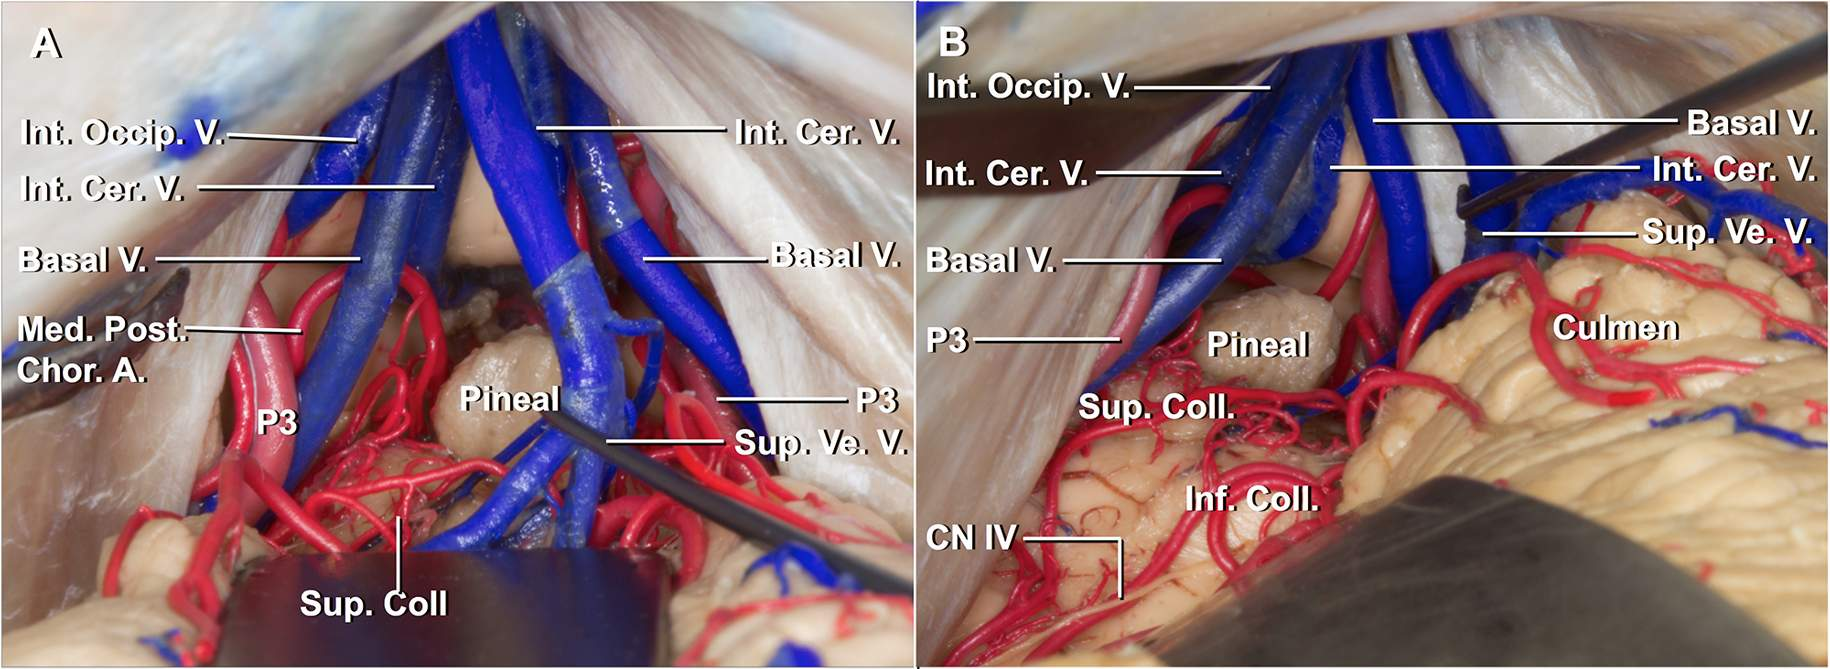 Figure 7: The midline route (left image) depends upon retraction of the culmen, whereas the paramedian route (right image) reaches over the more inferiorly situated lateral cerebellum. Cranial nerve IV is situated at the lower edge of the dissection field.